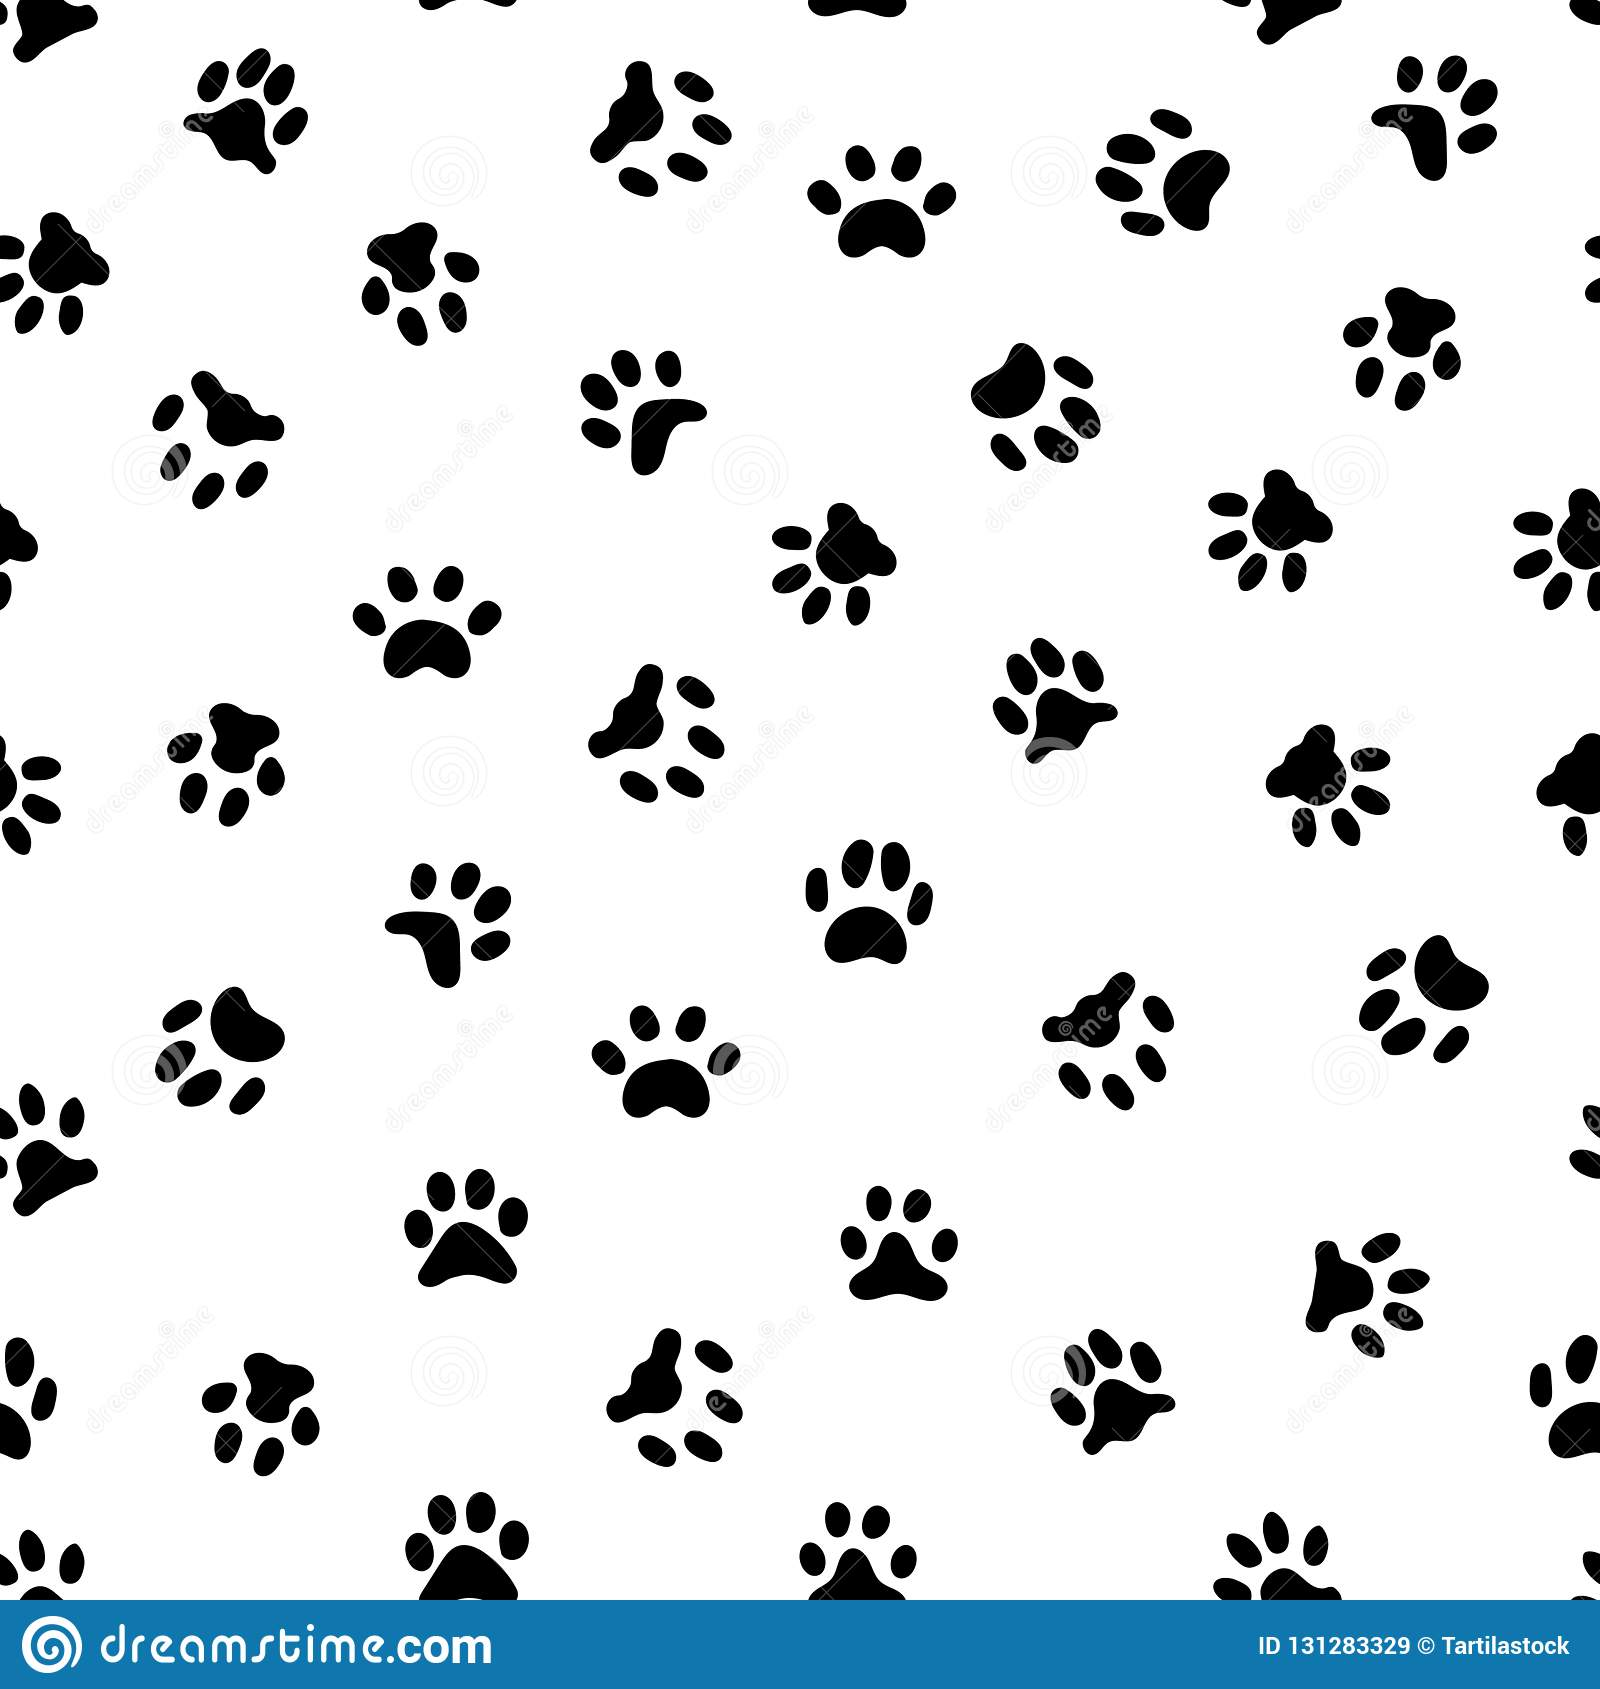 6652929387b4 Cat or dog paws footsteps prints, pets footprints and animal printed  footstep tracks. Kitten or dogs feet black footprint shape seamless  pattern, vector ...